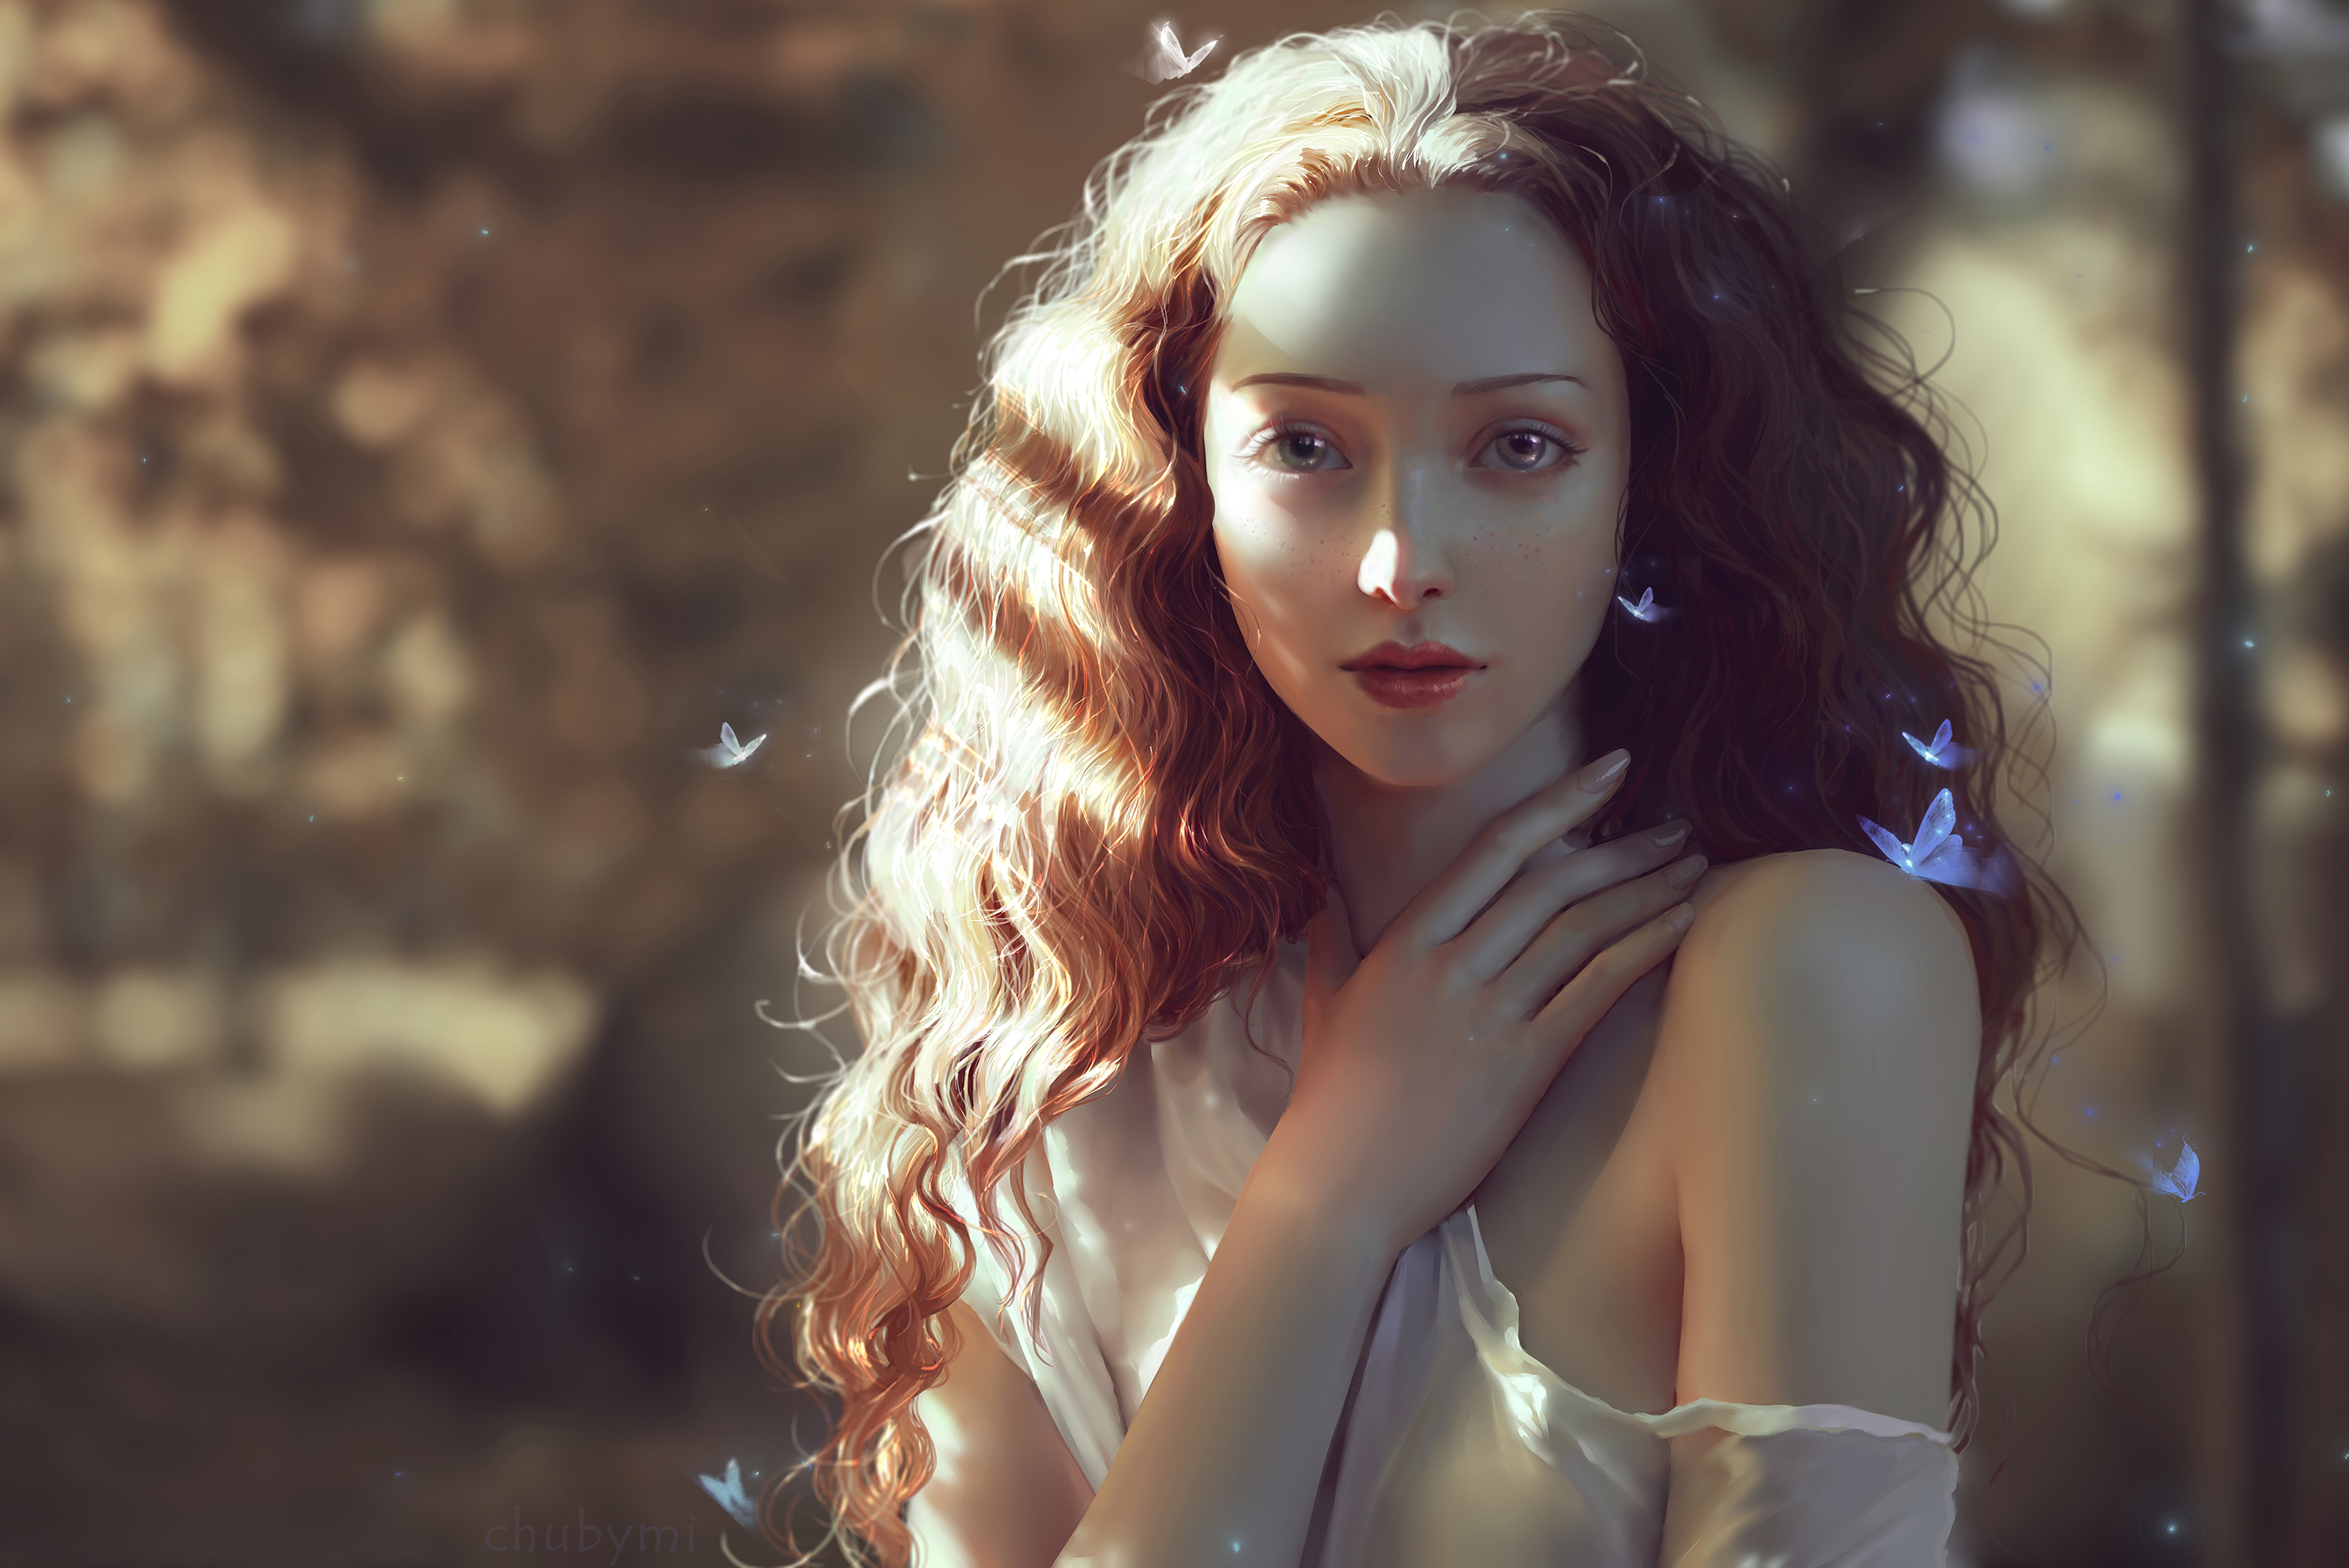 Wallpaper Beautiful woman, Girl, Teen, Butterflies, Fairy, HD ...